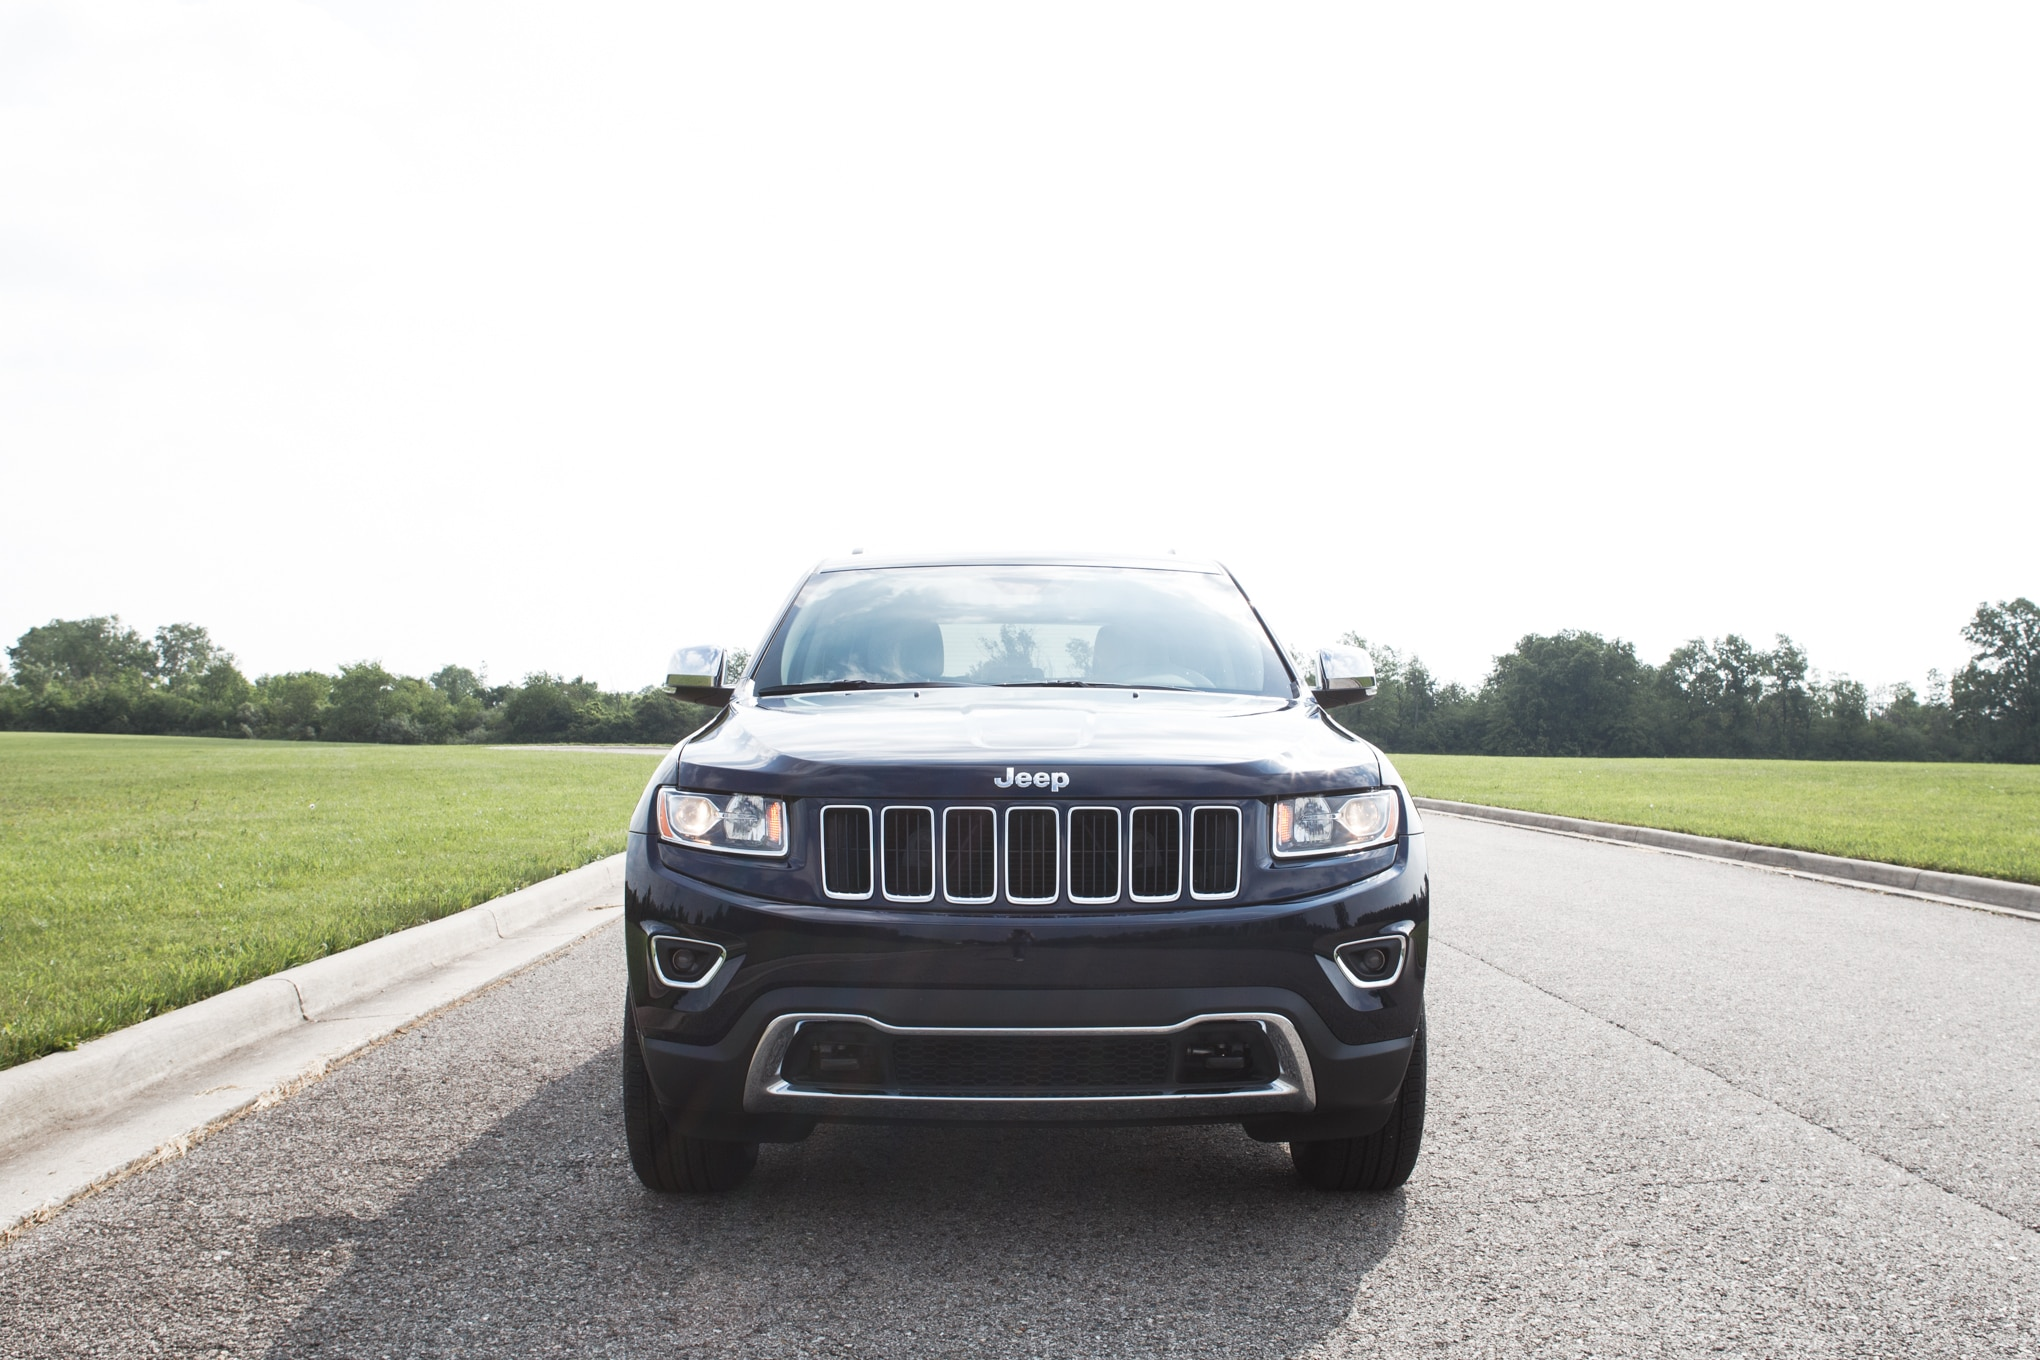 2014 Jeep Grand Cherokee Limited 4x4 - Editors' Notebook